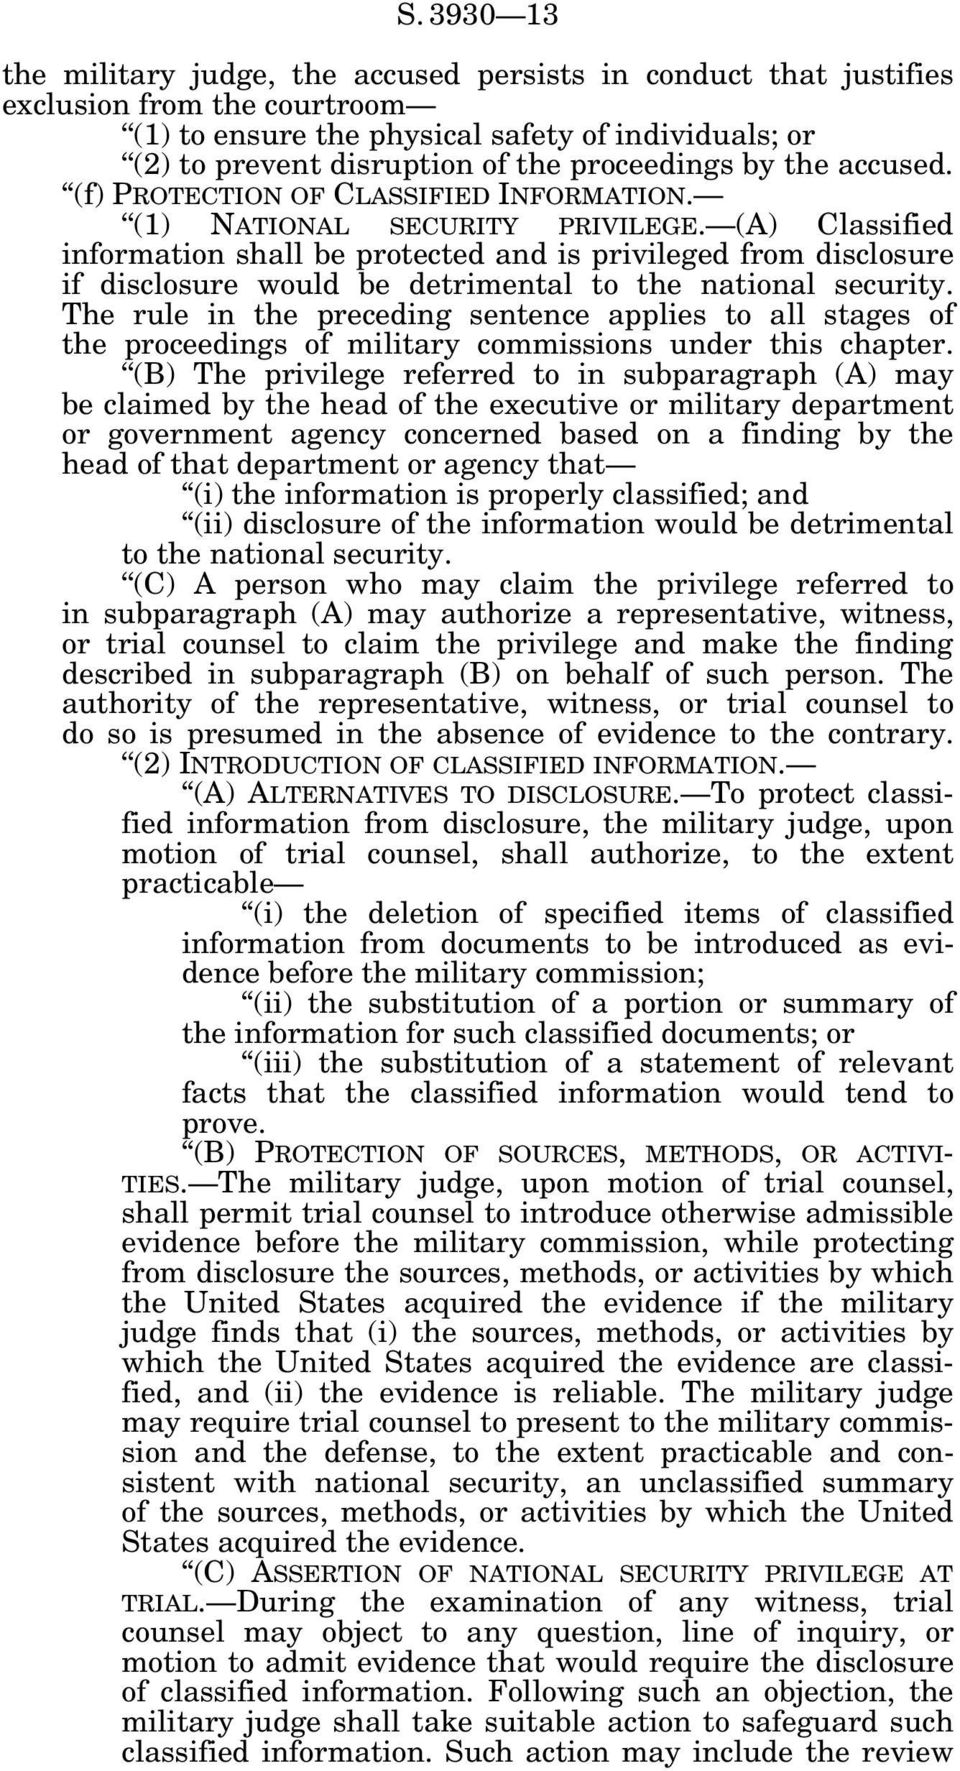 (A) Classified information shall be protected and is privileged from disclosure if disclosure would be detrimental to the national security.